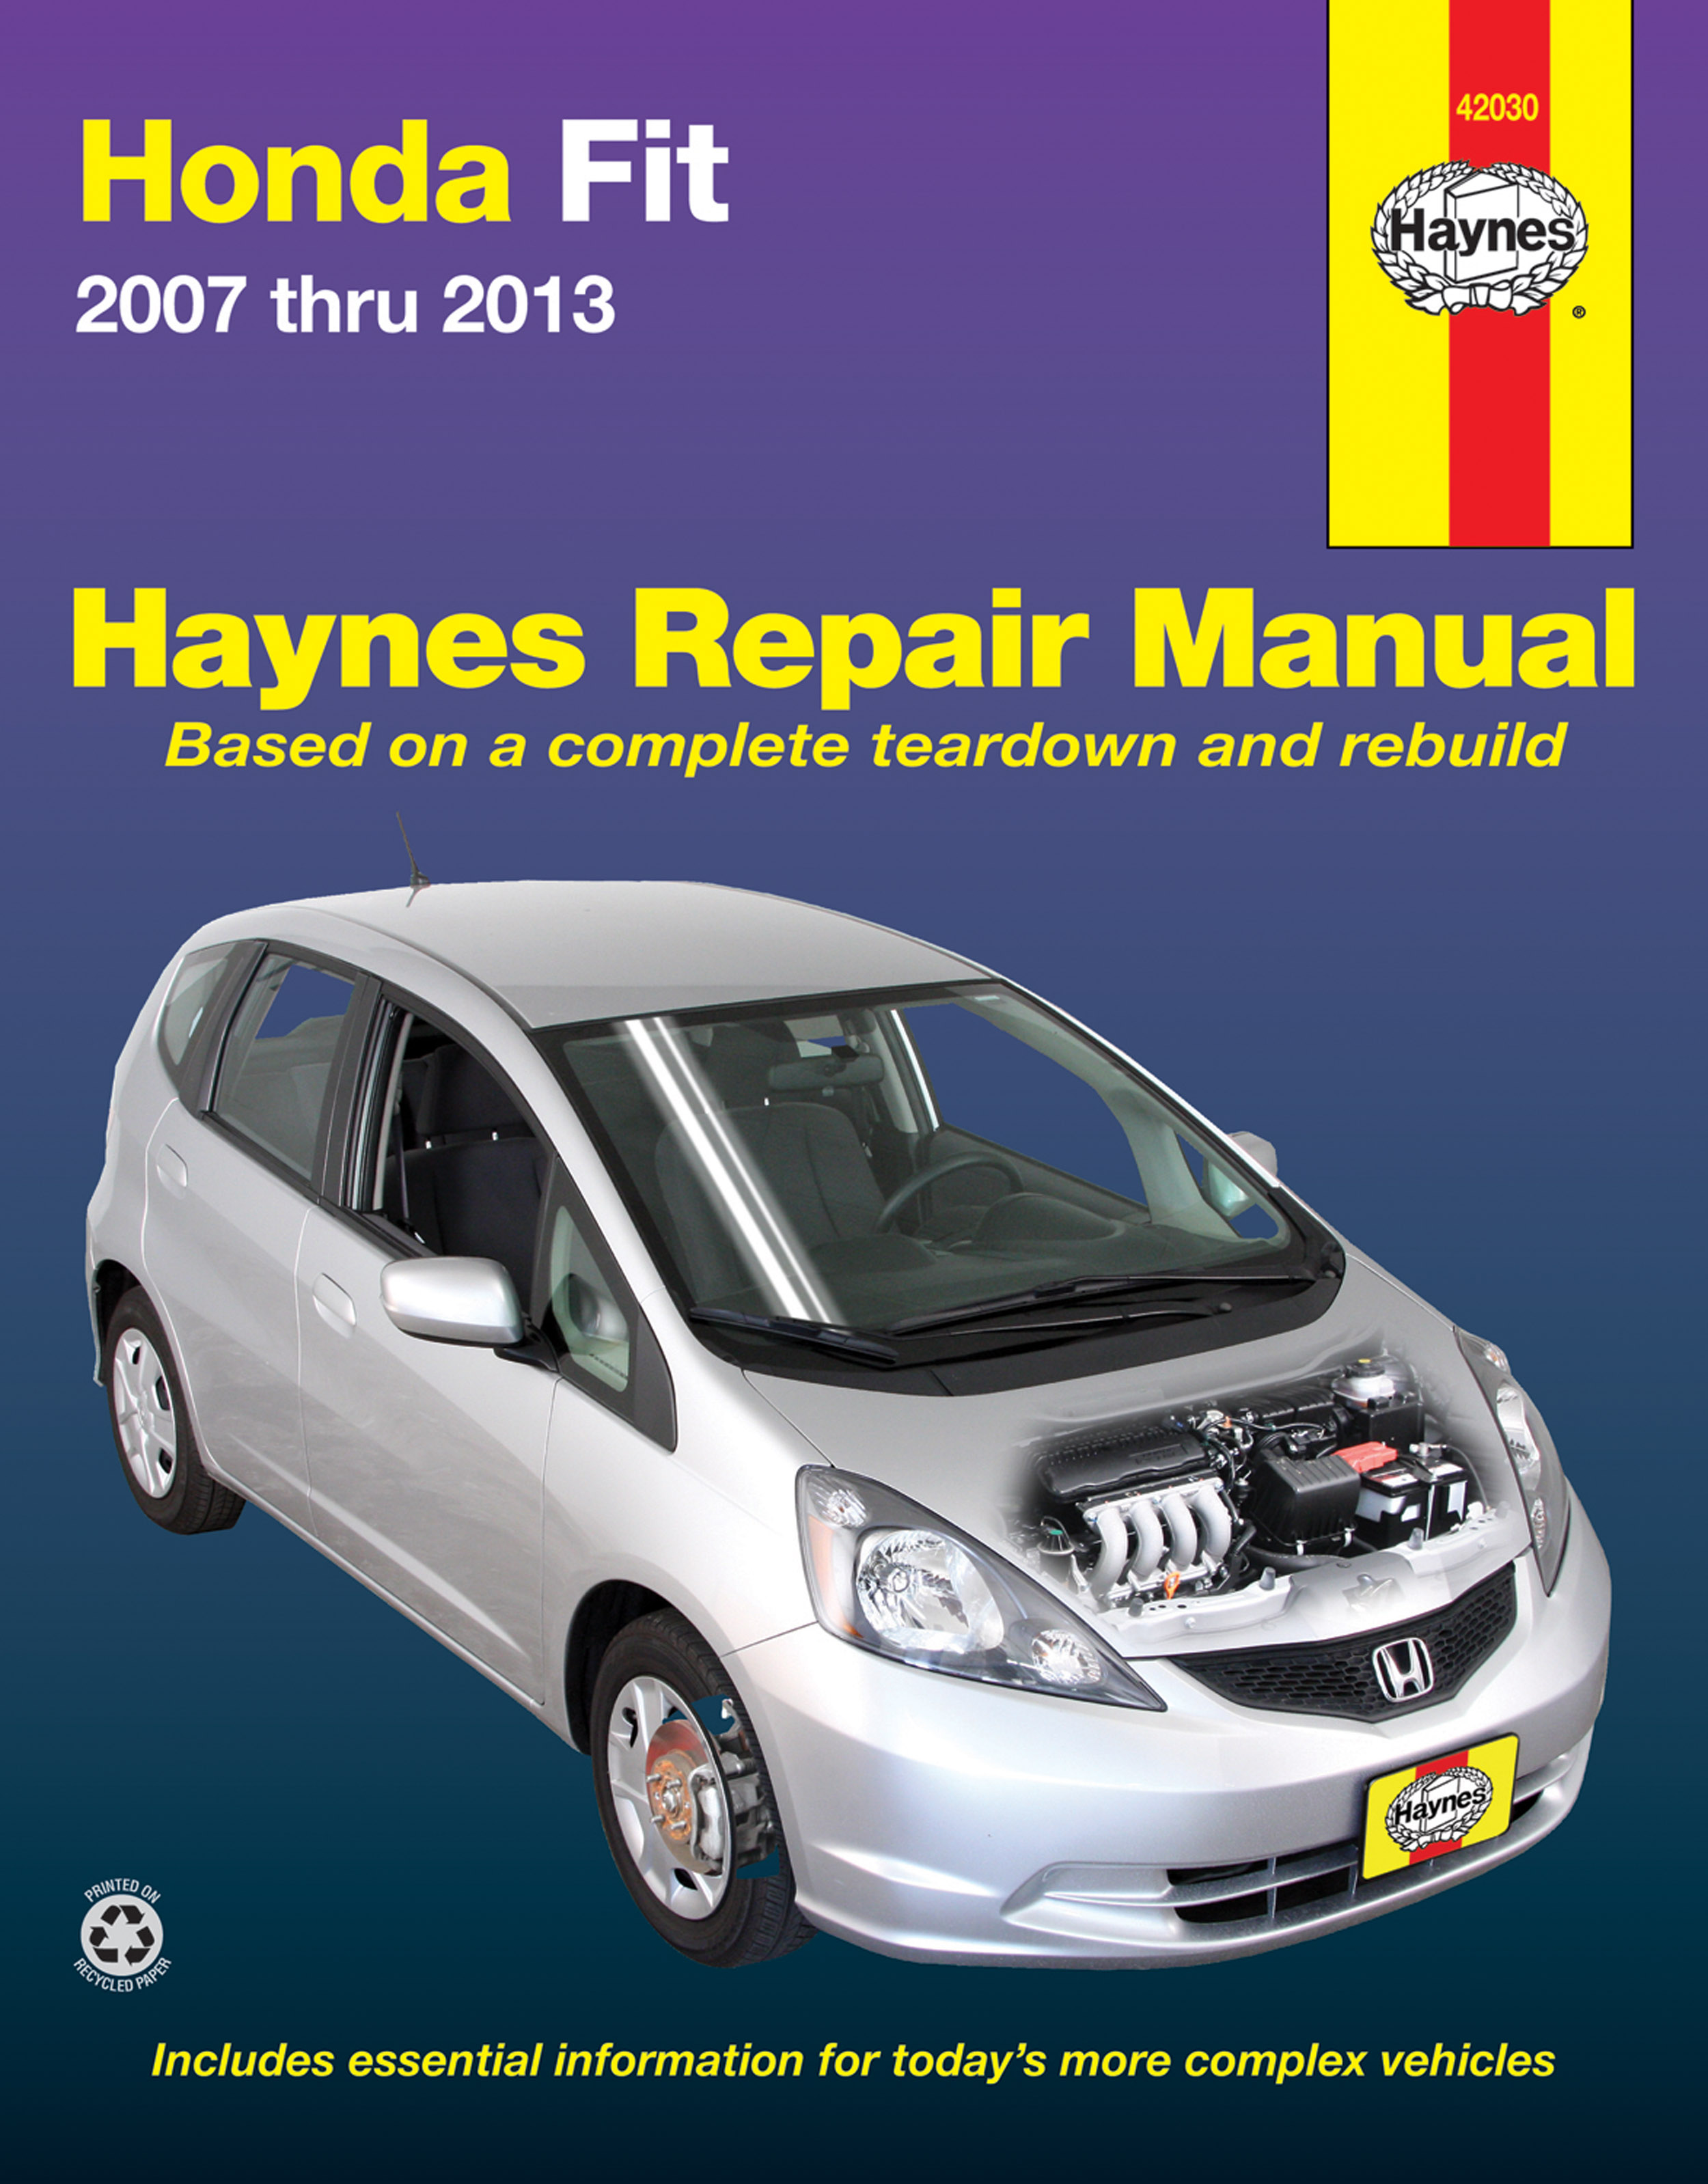 honda fit 07 13 haynes repair manual haynes manuals rh haynes com haynes repair manual canadian tire haynes repair manual pdf free download